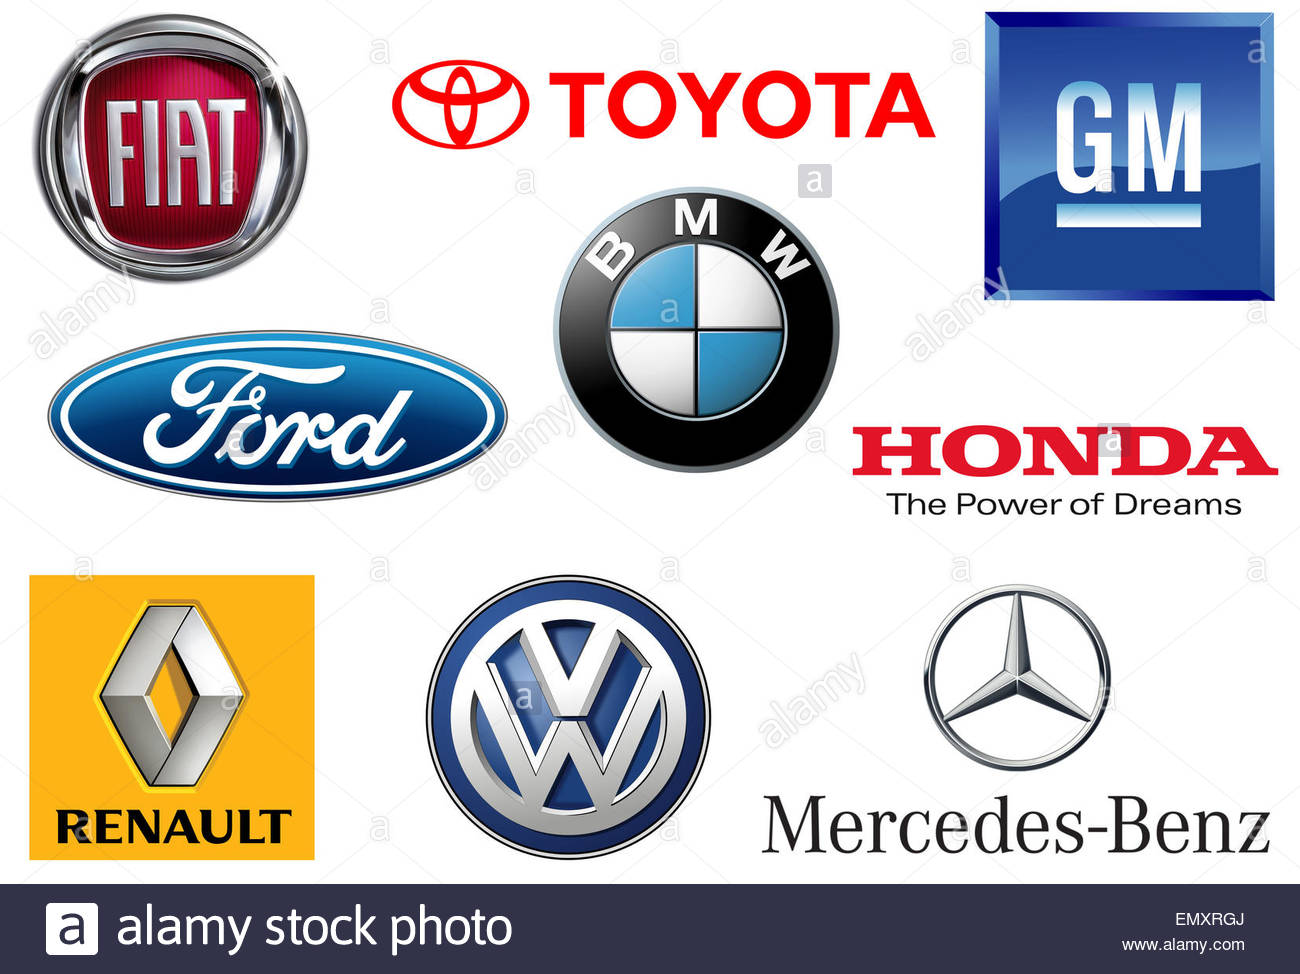 Toyota Volkswagen Gm General Motors Ford Bmw Mercedes